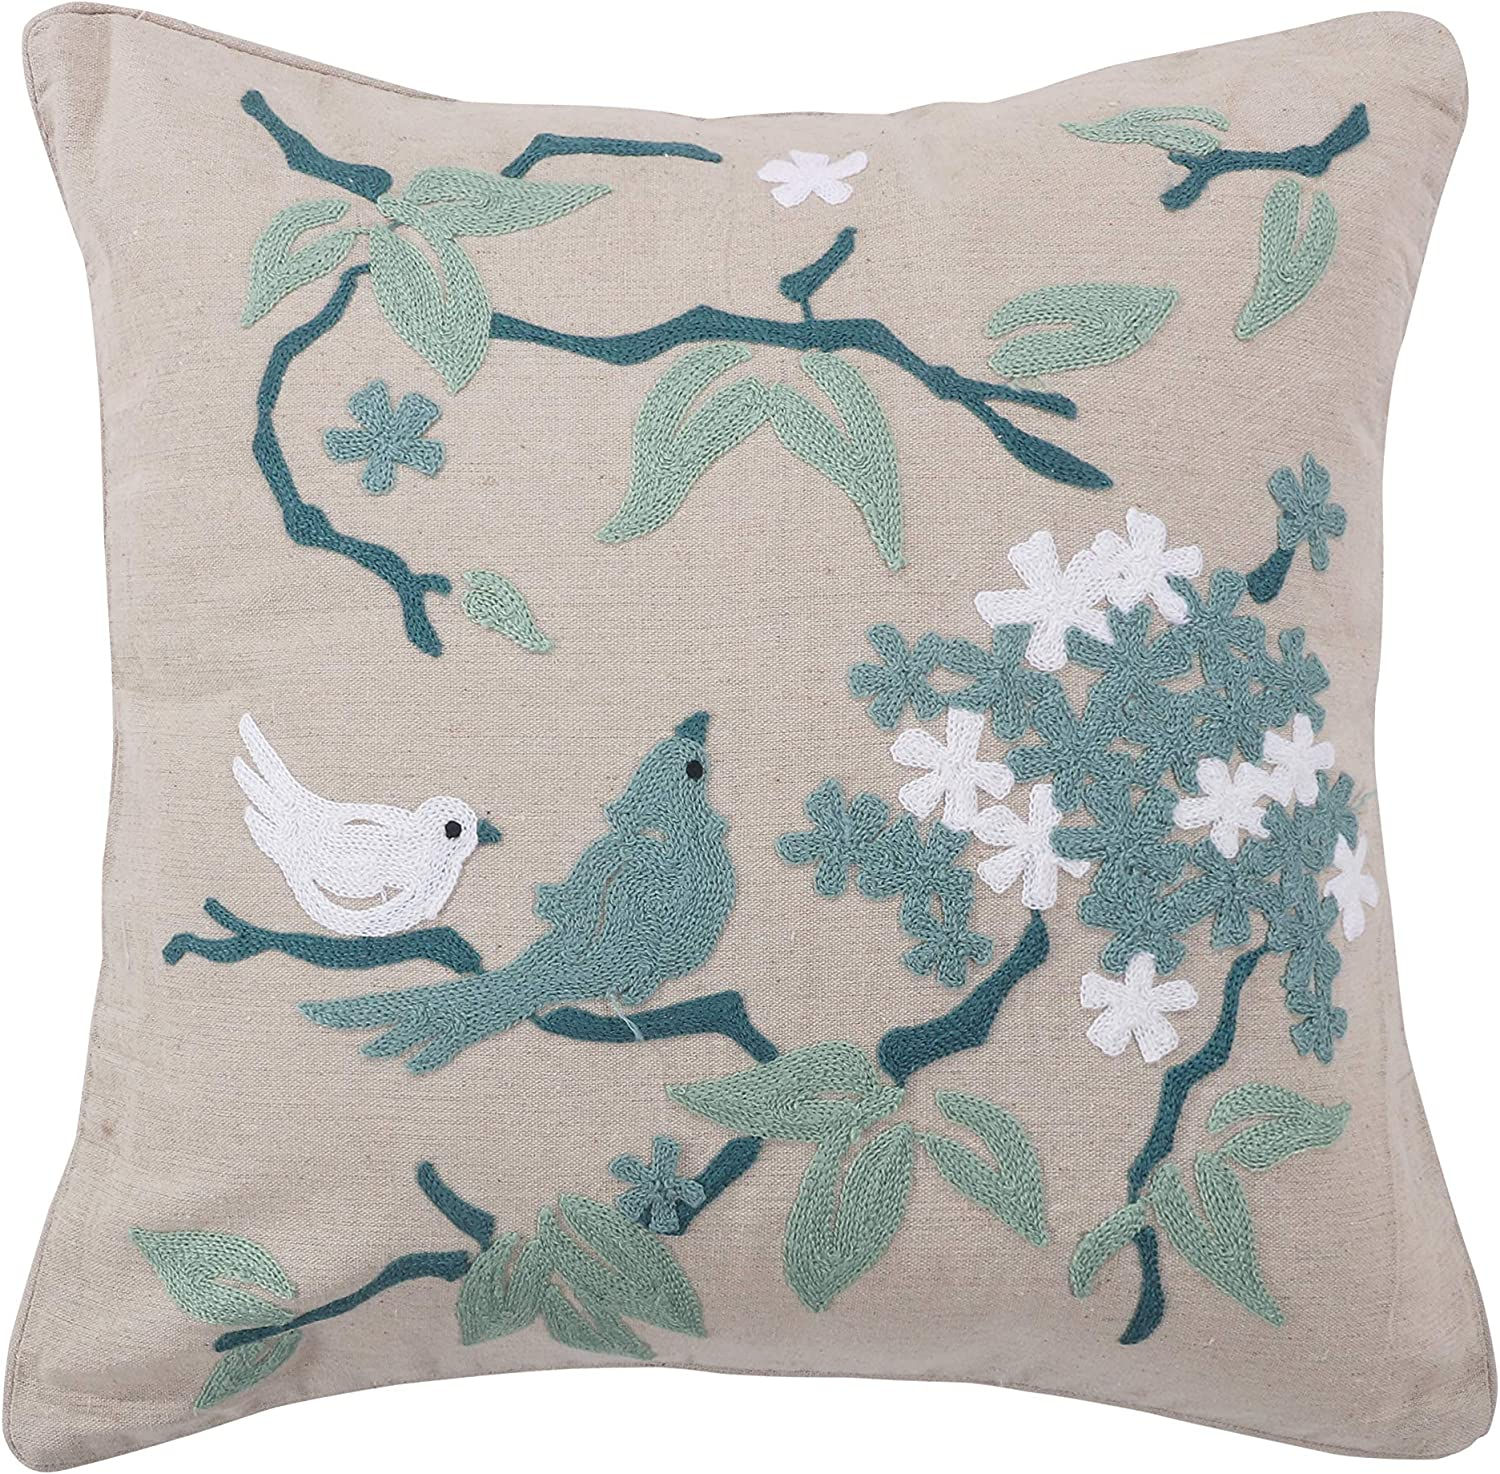 Amazon Com Levtex Home Winslow Fbird Embroidered Taupe Pillow Animal 100 Cotton Natural Teal White Home Kitchen